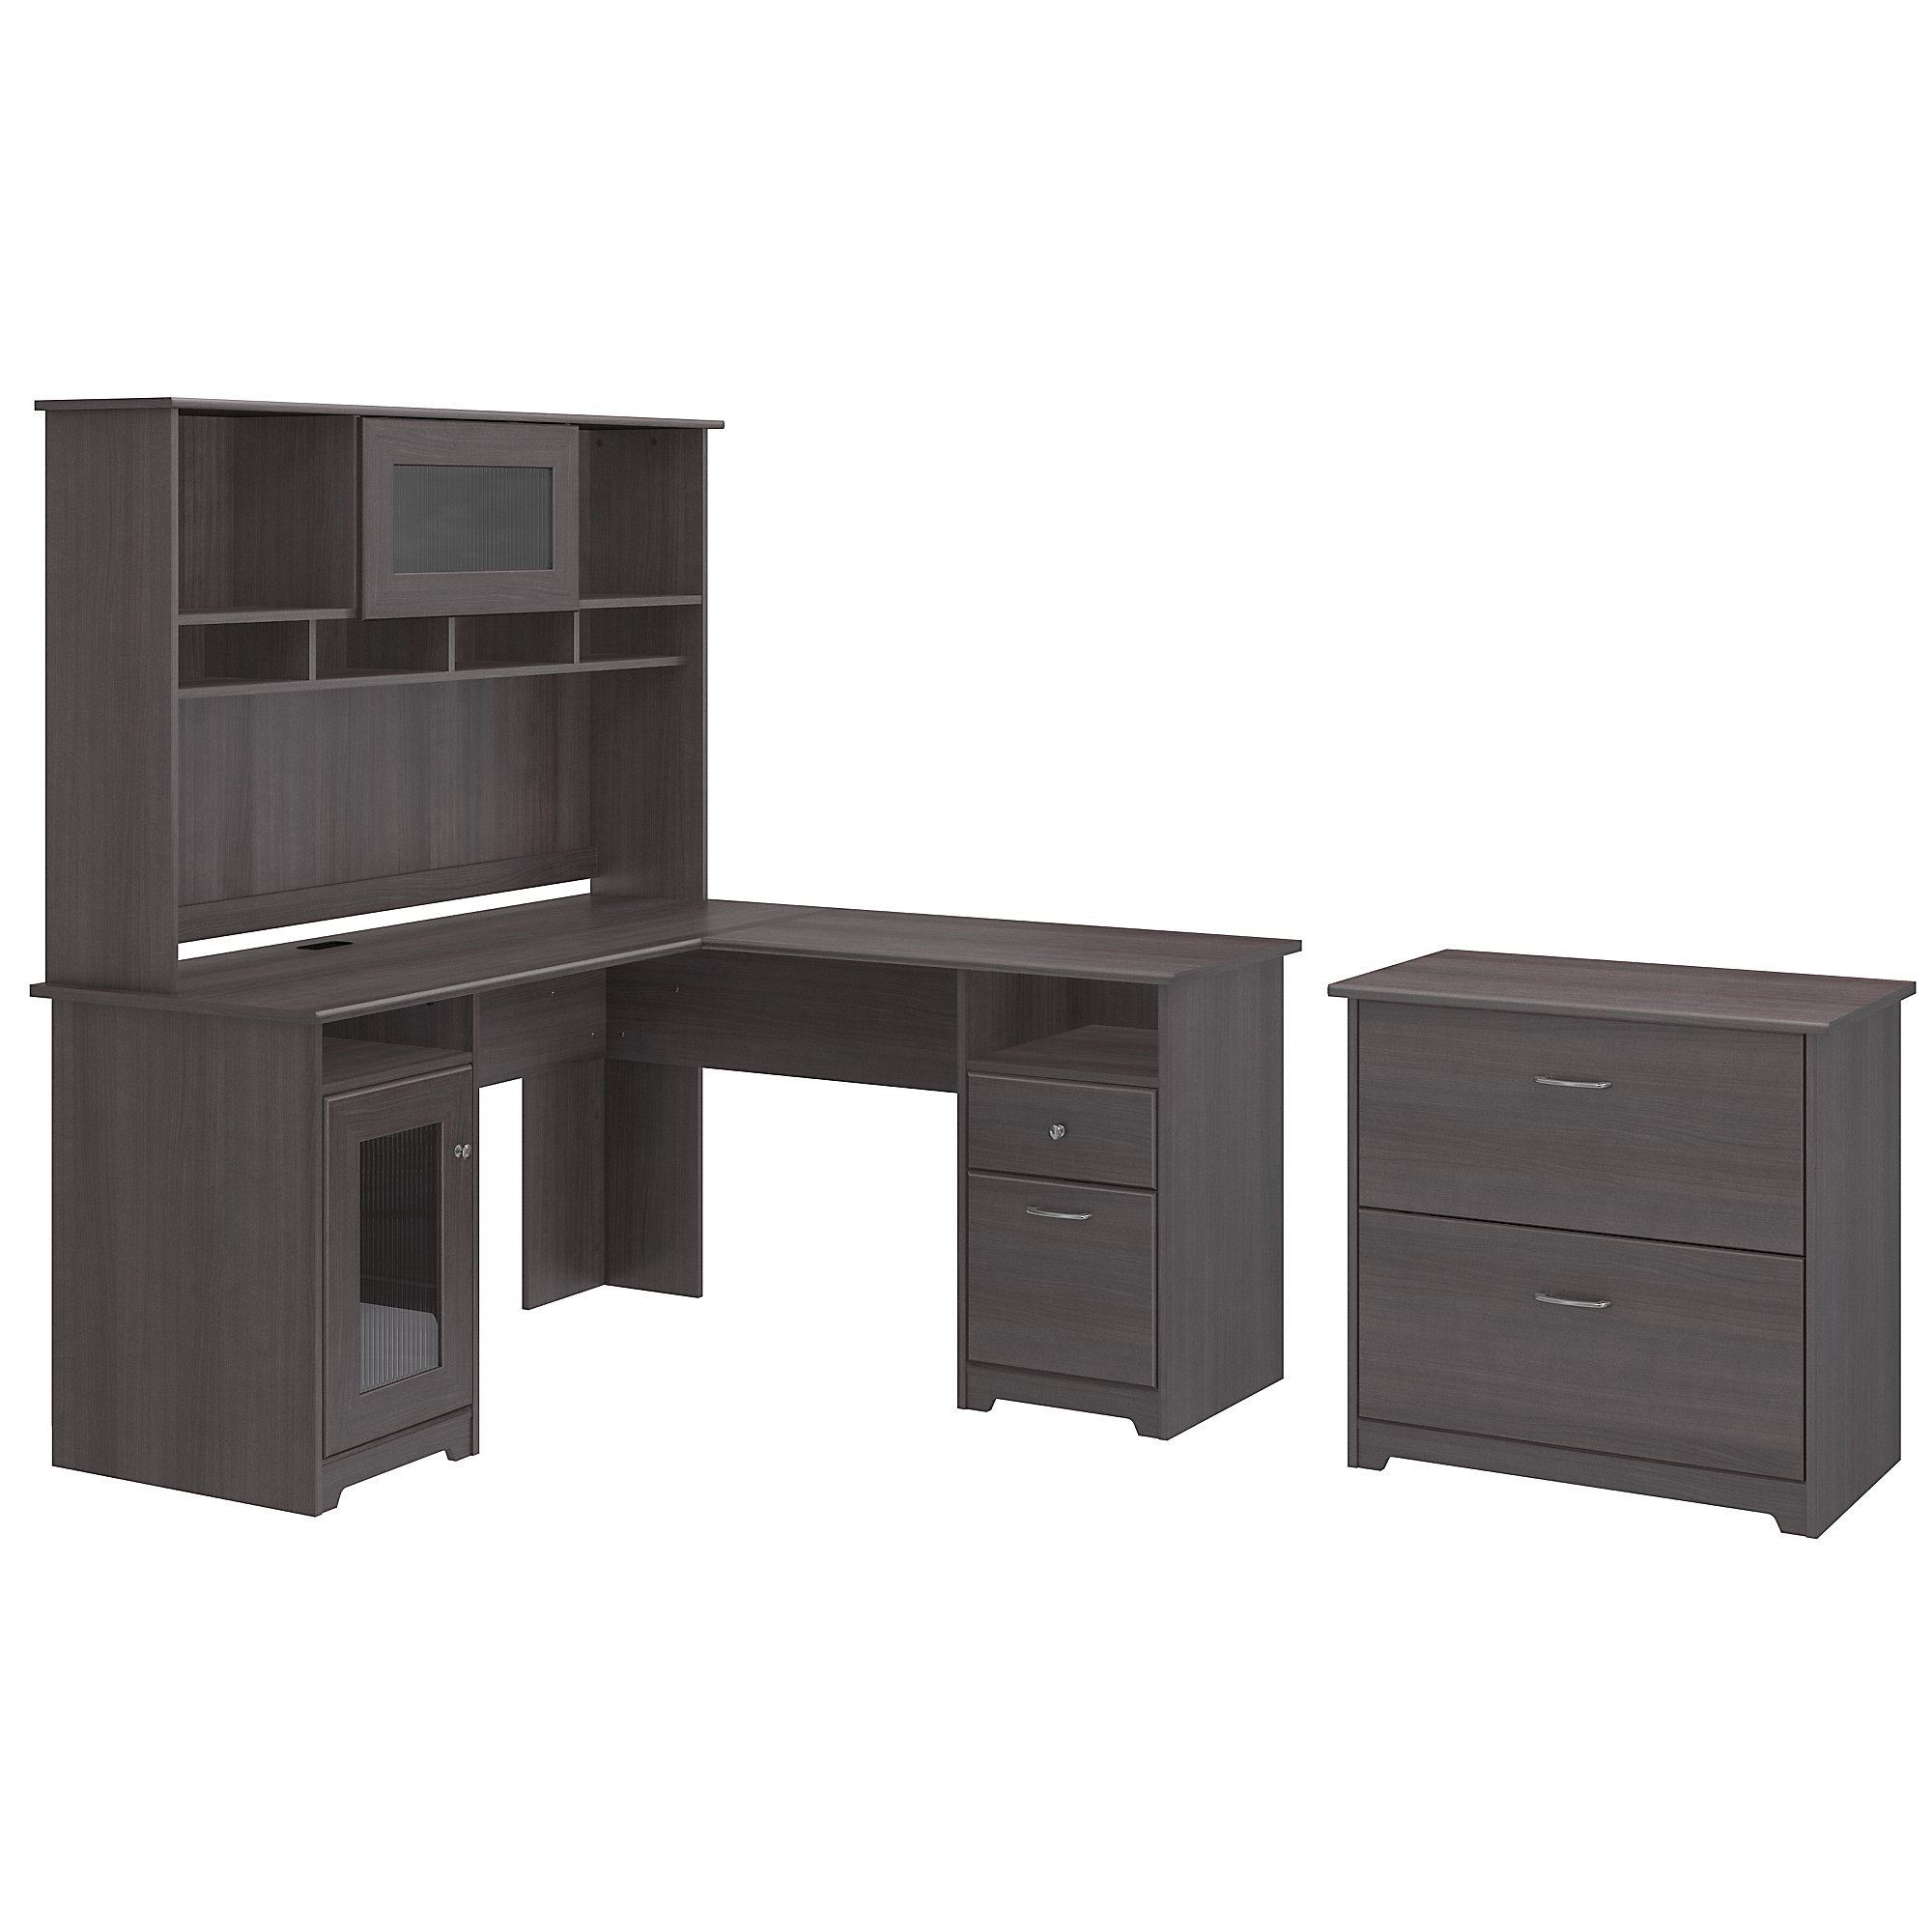 Cabot L Shaped Desk with Hutch and Lateral File Cabinet by Bush Furniture